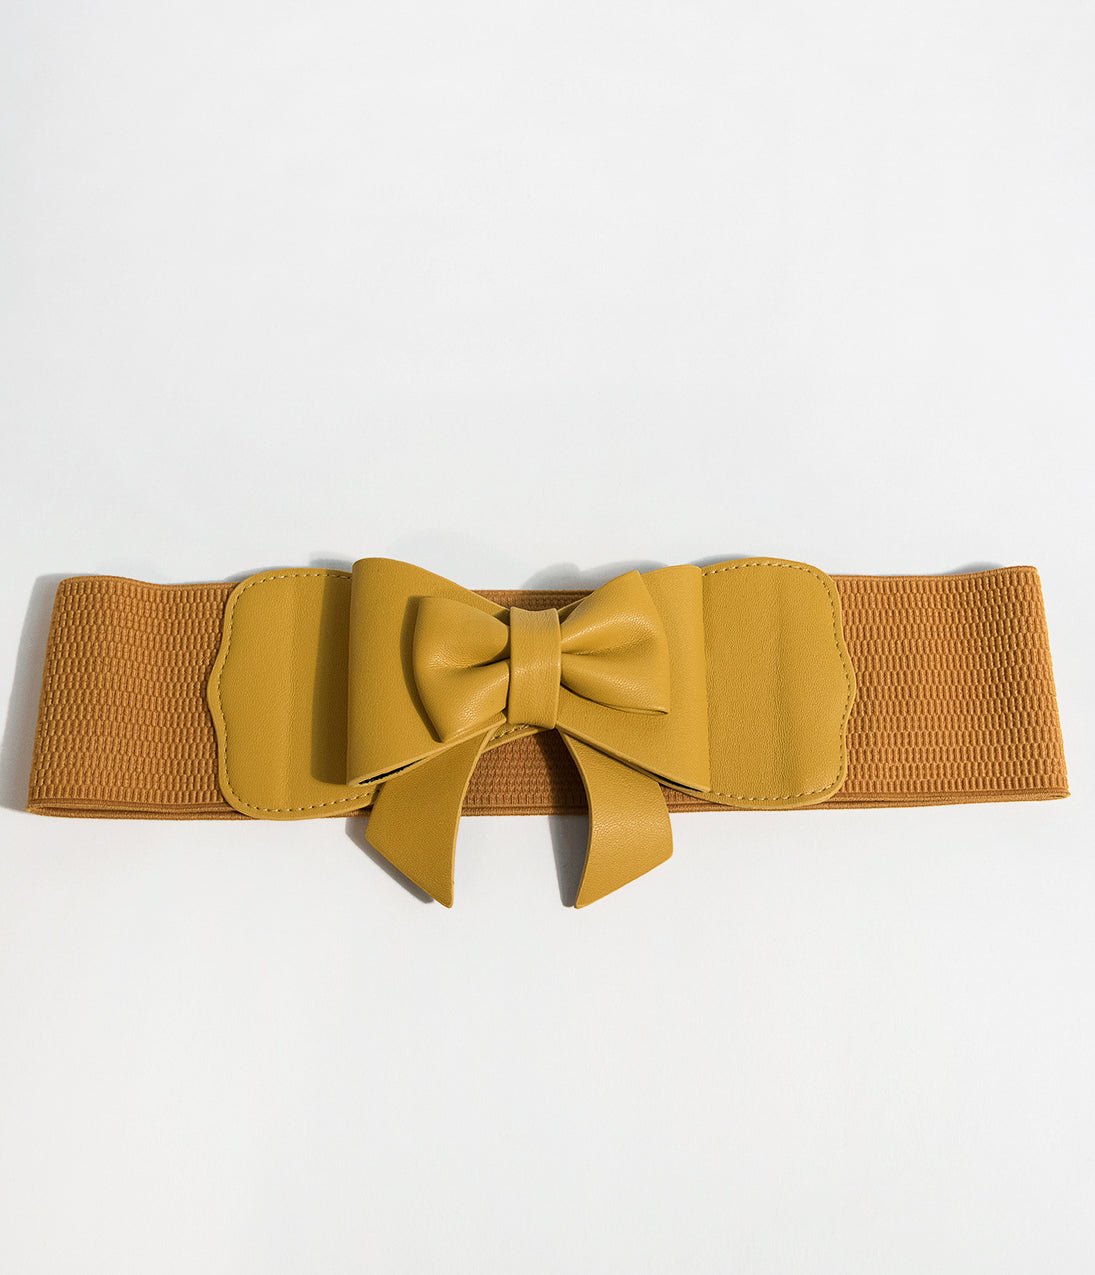 Vintage Wide Belts, Cinch Belts 40s, 50s Belts Banned 1950S Pin Up Mustard Yellow Leatherette Play It Right Bow Belt $16.00 AT vintagedancer.com